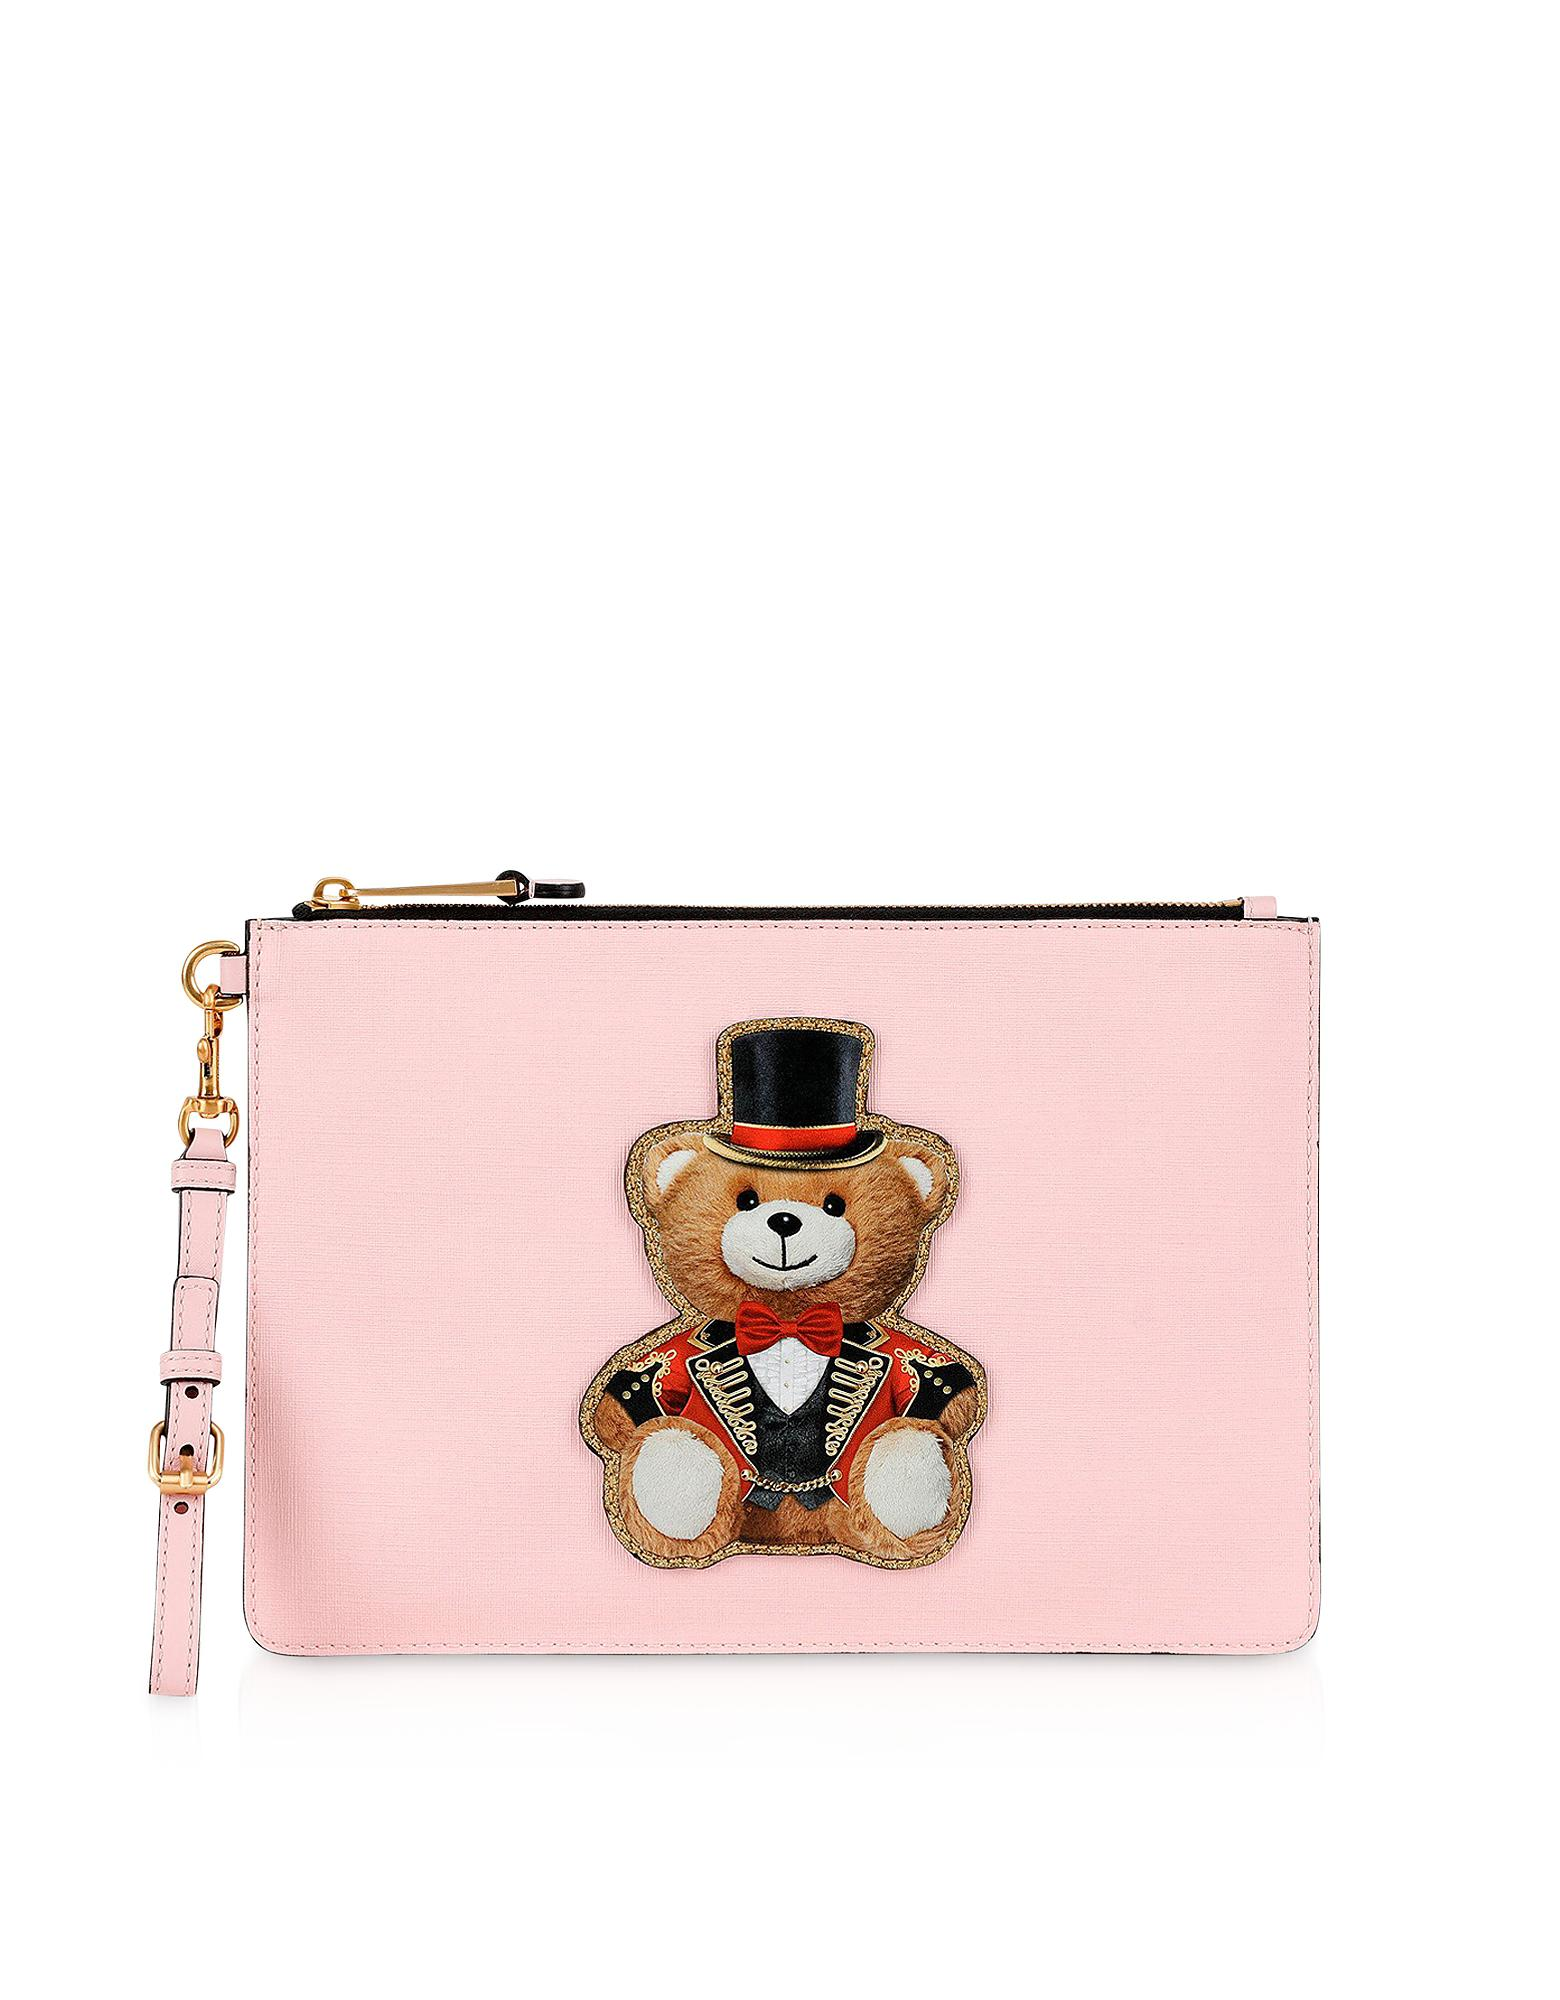 d727b74c4ad Lyst - Moschino Teddy Circus Leather Clutch in Pink